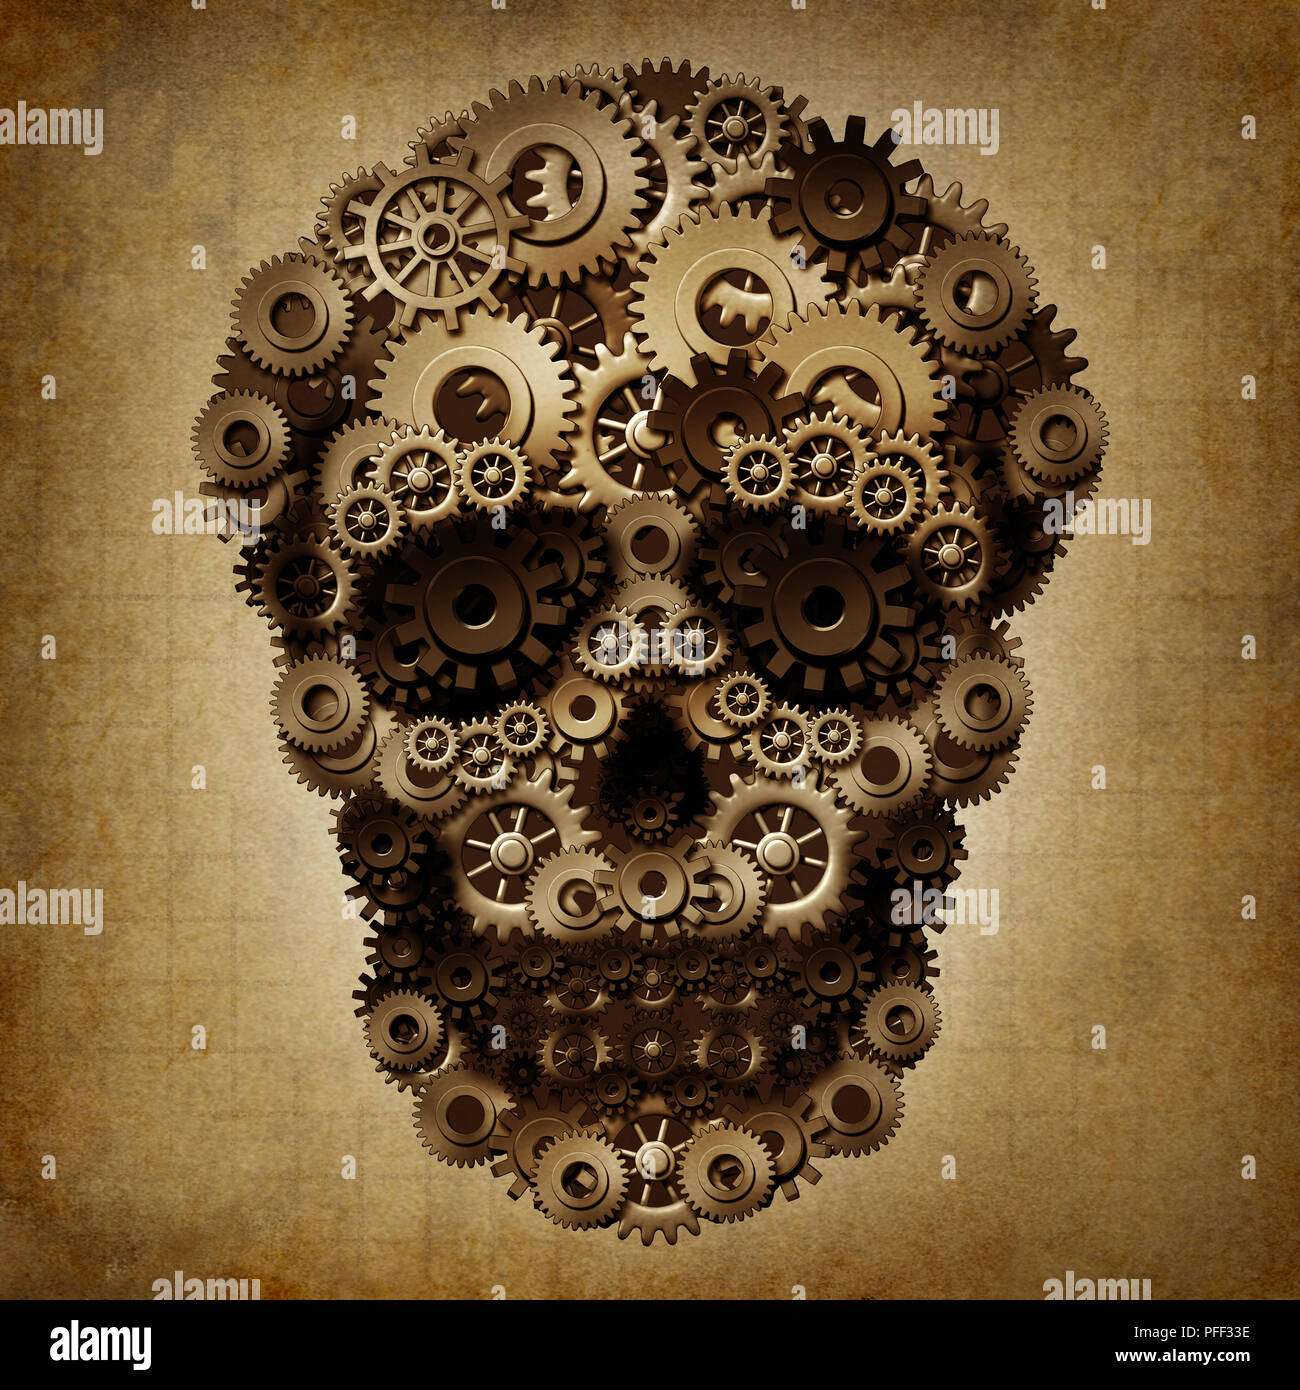 Skull gear grunge as a group of cog wheels shaped as a steampunk or steam punk death skeleton as a vintage technology danger symbol. - Stock Image